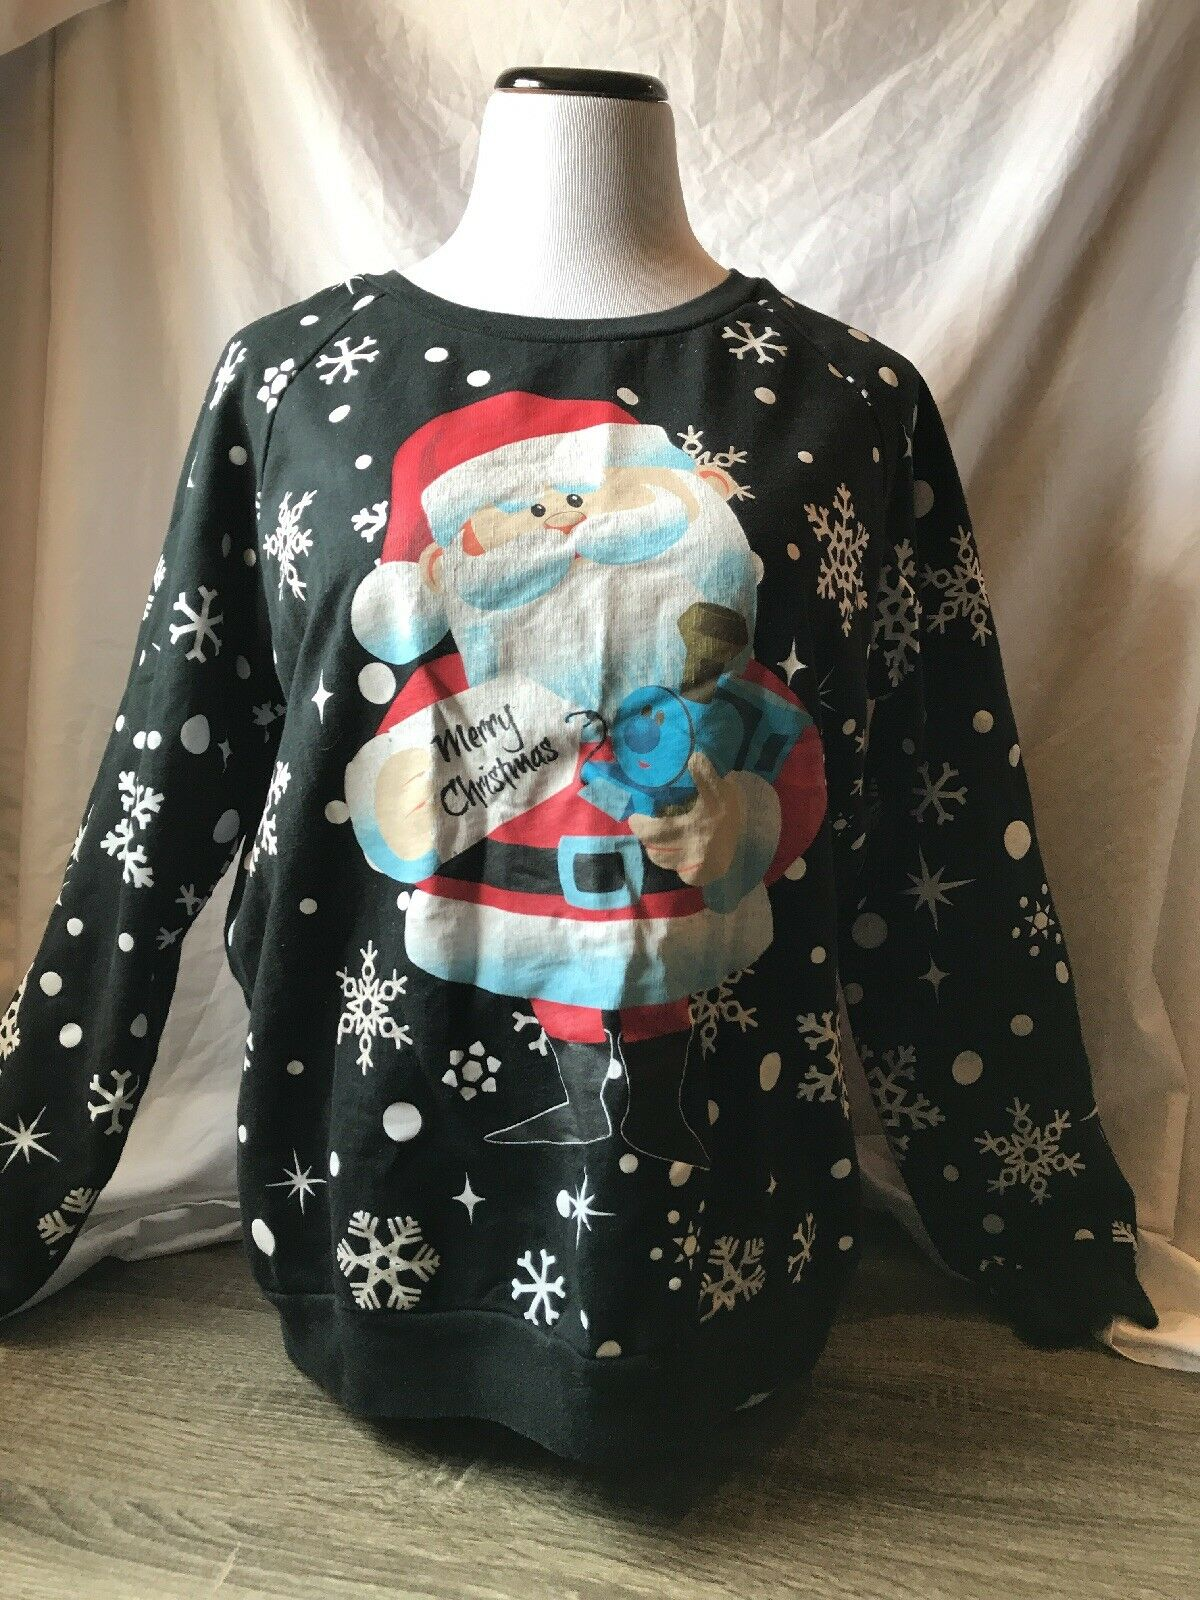 ad74292c998c Rudolph Red Nosed Santa snow Christmas Ugly Sweatshirt Women s XL ...